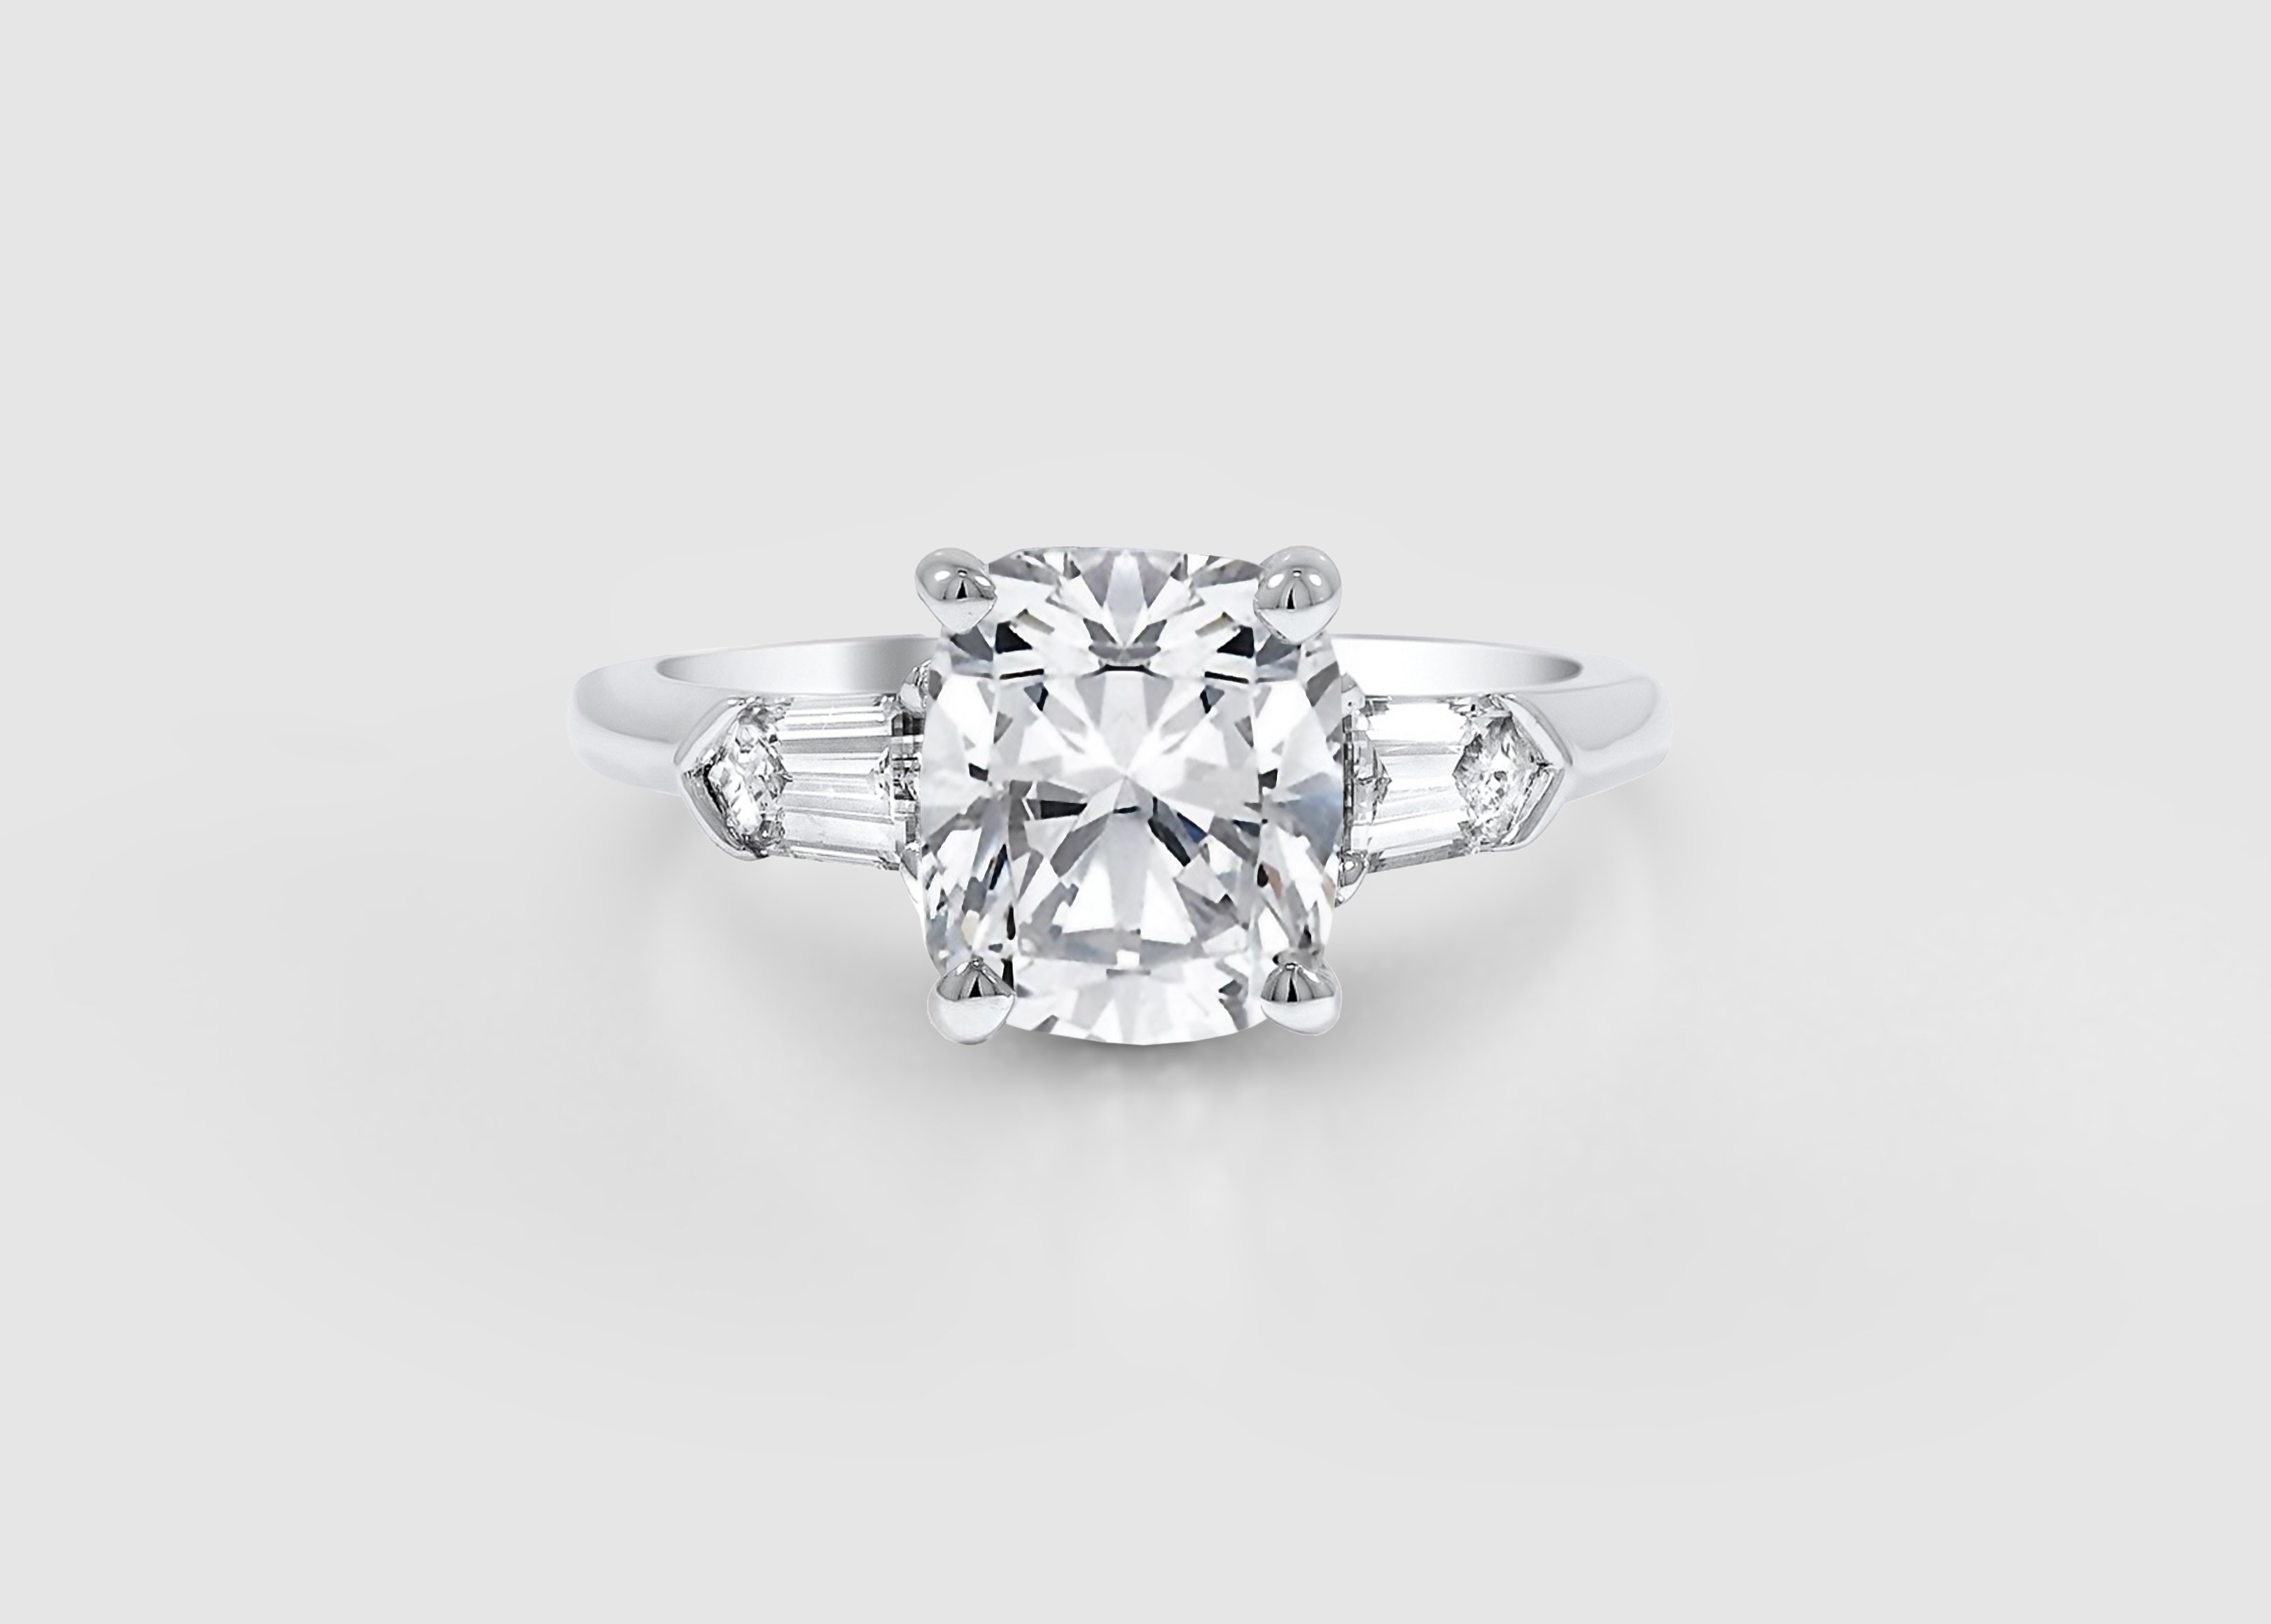 Engagement Ring Trends Of The Past, Present, And Future | Brilliant Intended For 2018 Vintage Style Diamond Anniversary Rings (View 8 of 15)